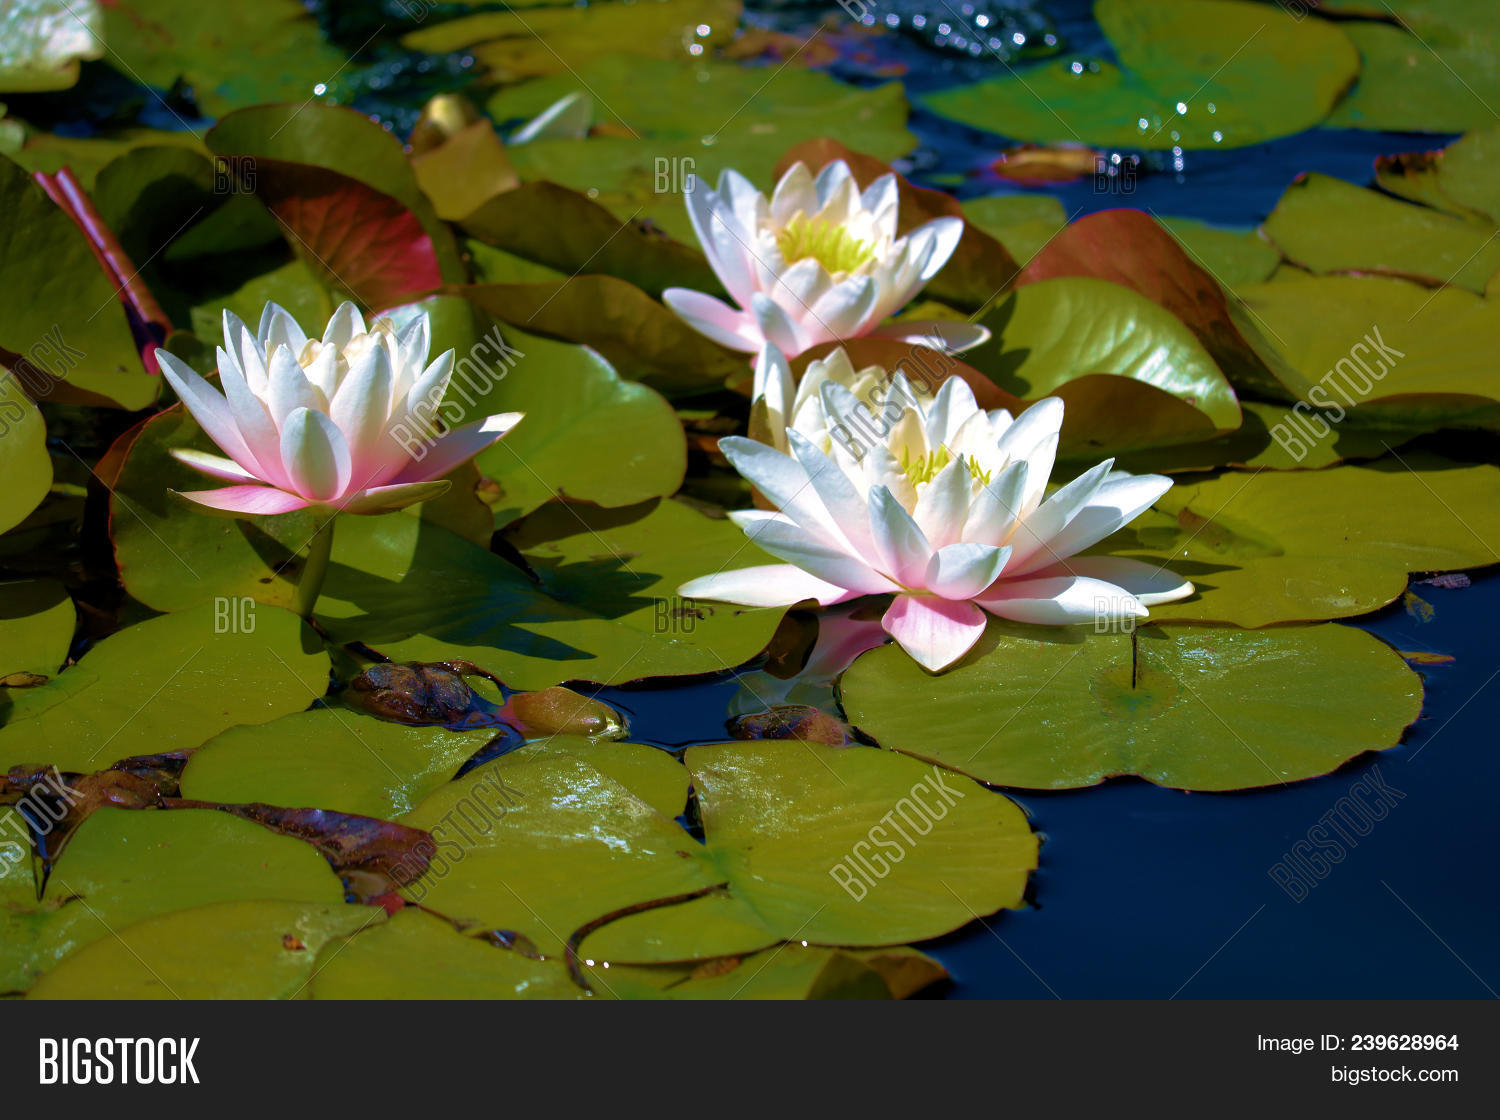 Lily Pads With Lotus Flowers Taken At A Pond In A Zen Meditation